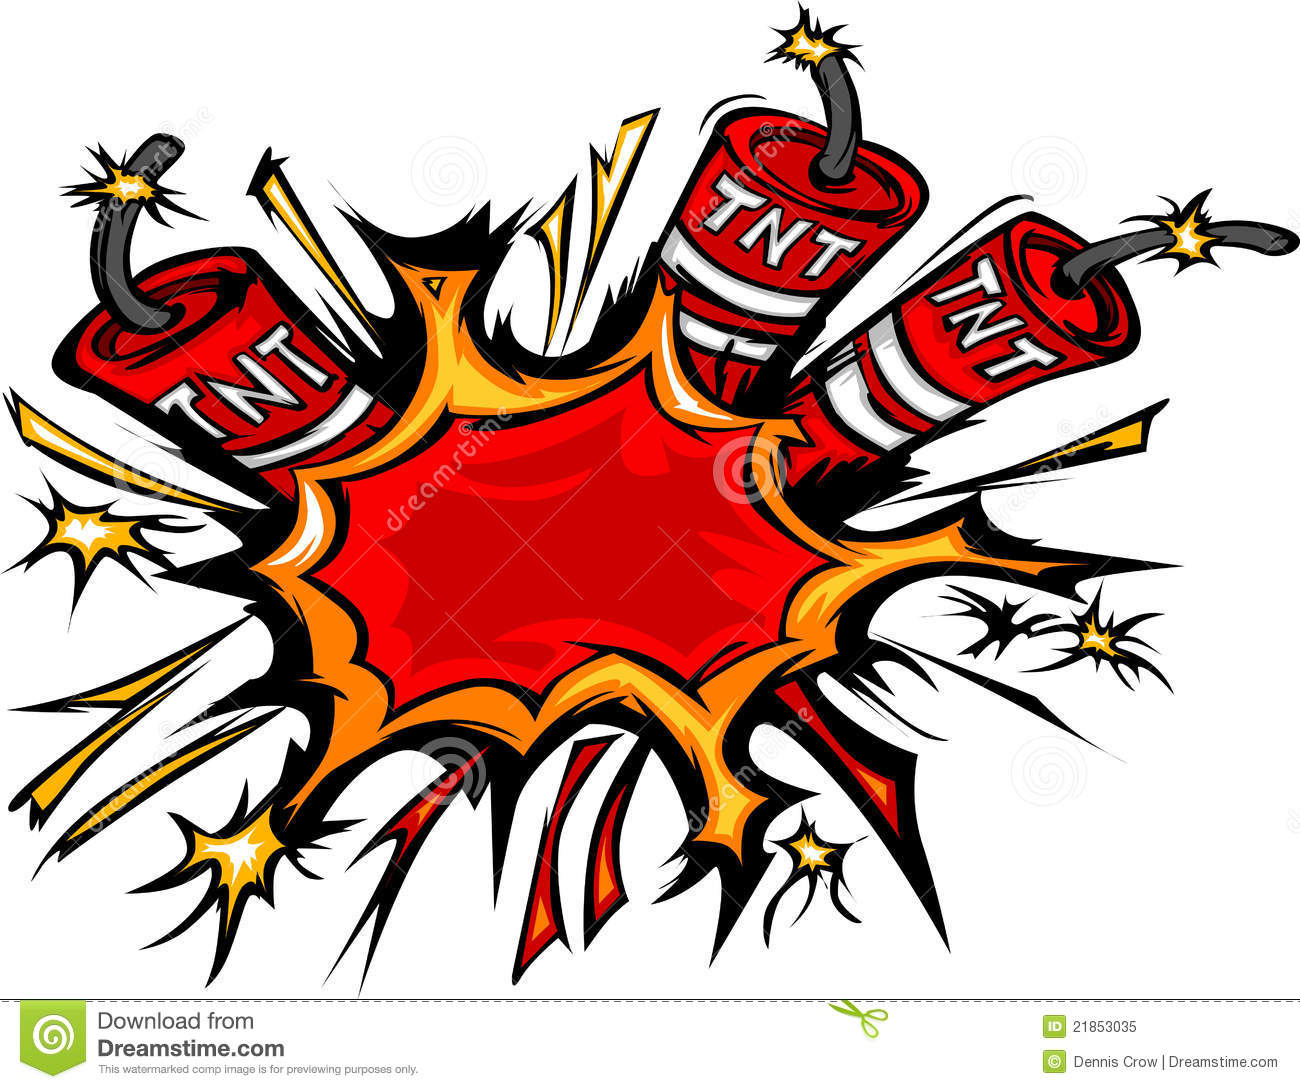 Explosion clipart tnt bomb. Dynamite cliparts free download